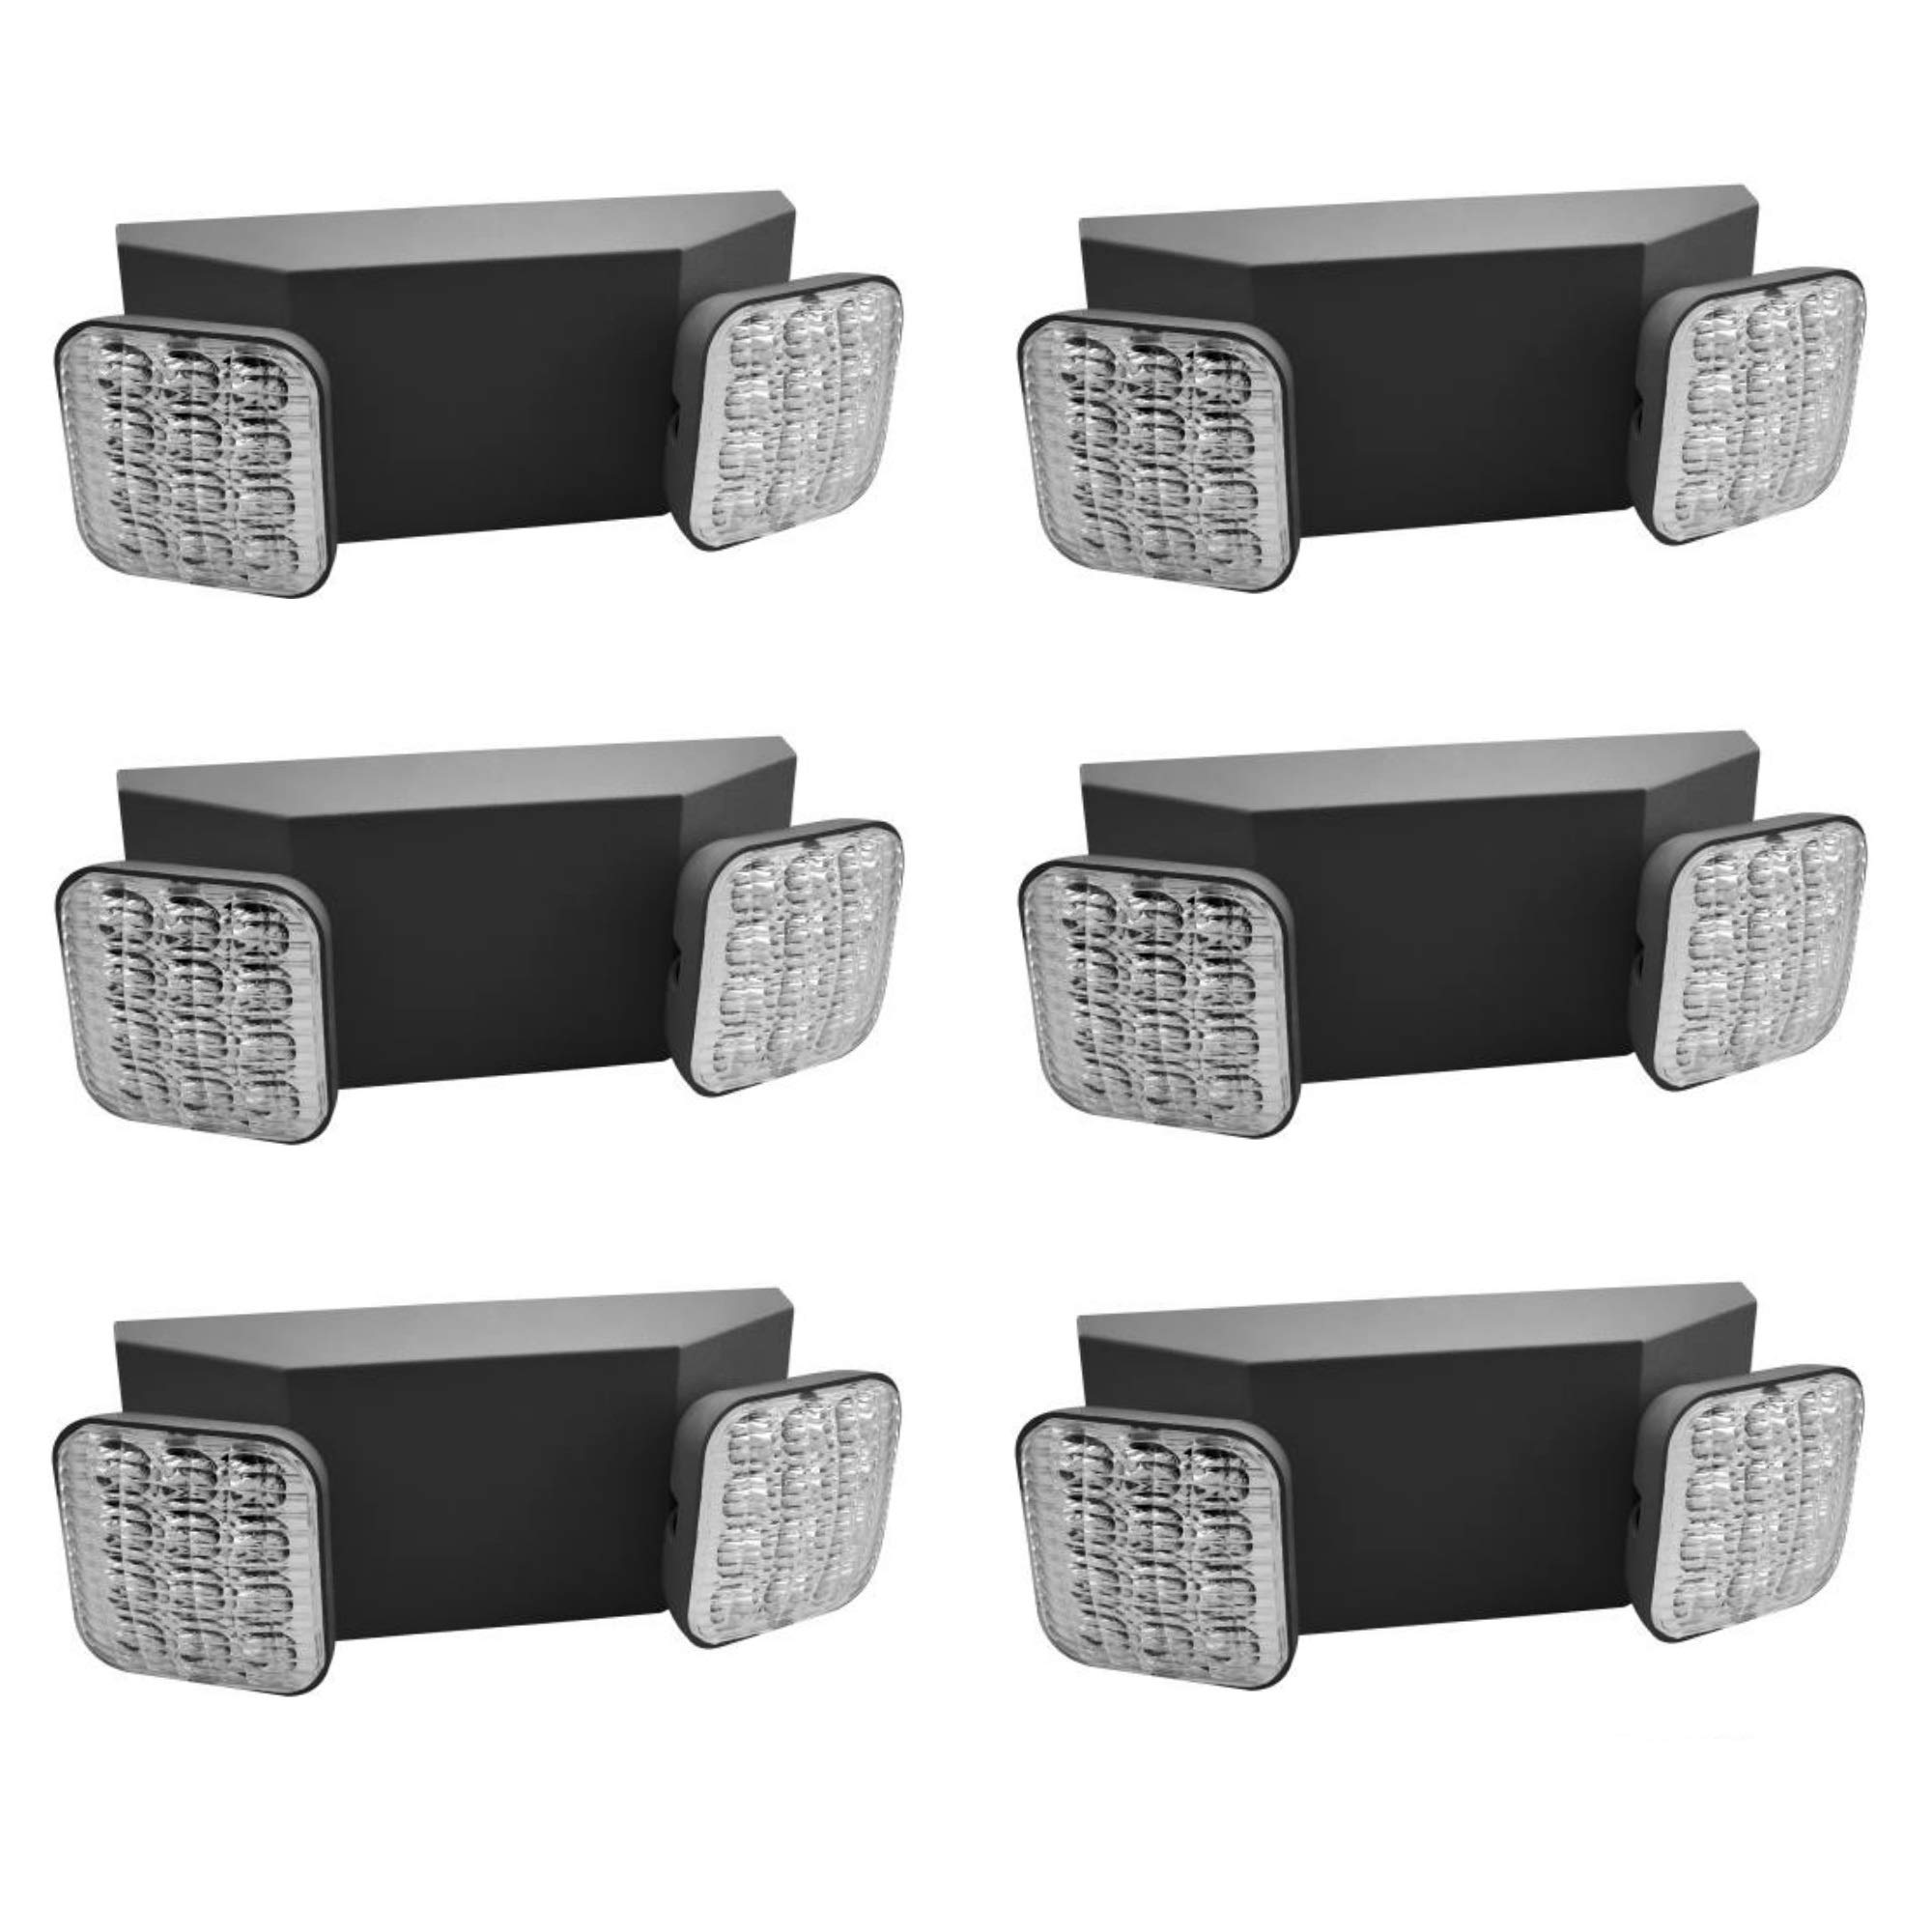 Hardwire LED Emergency Light Standard With Adjustable Heads, Backup Battery, UL Certified 6 Pack